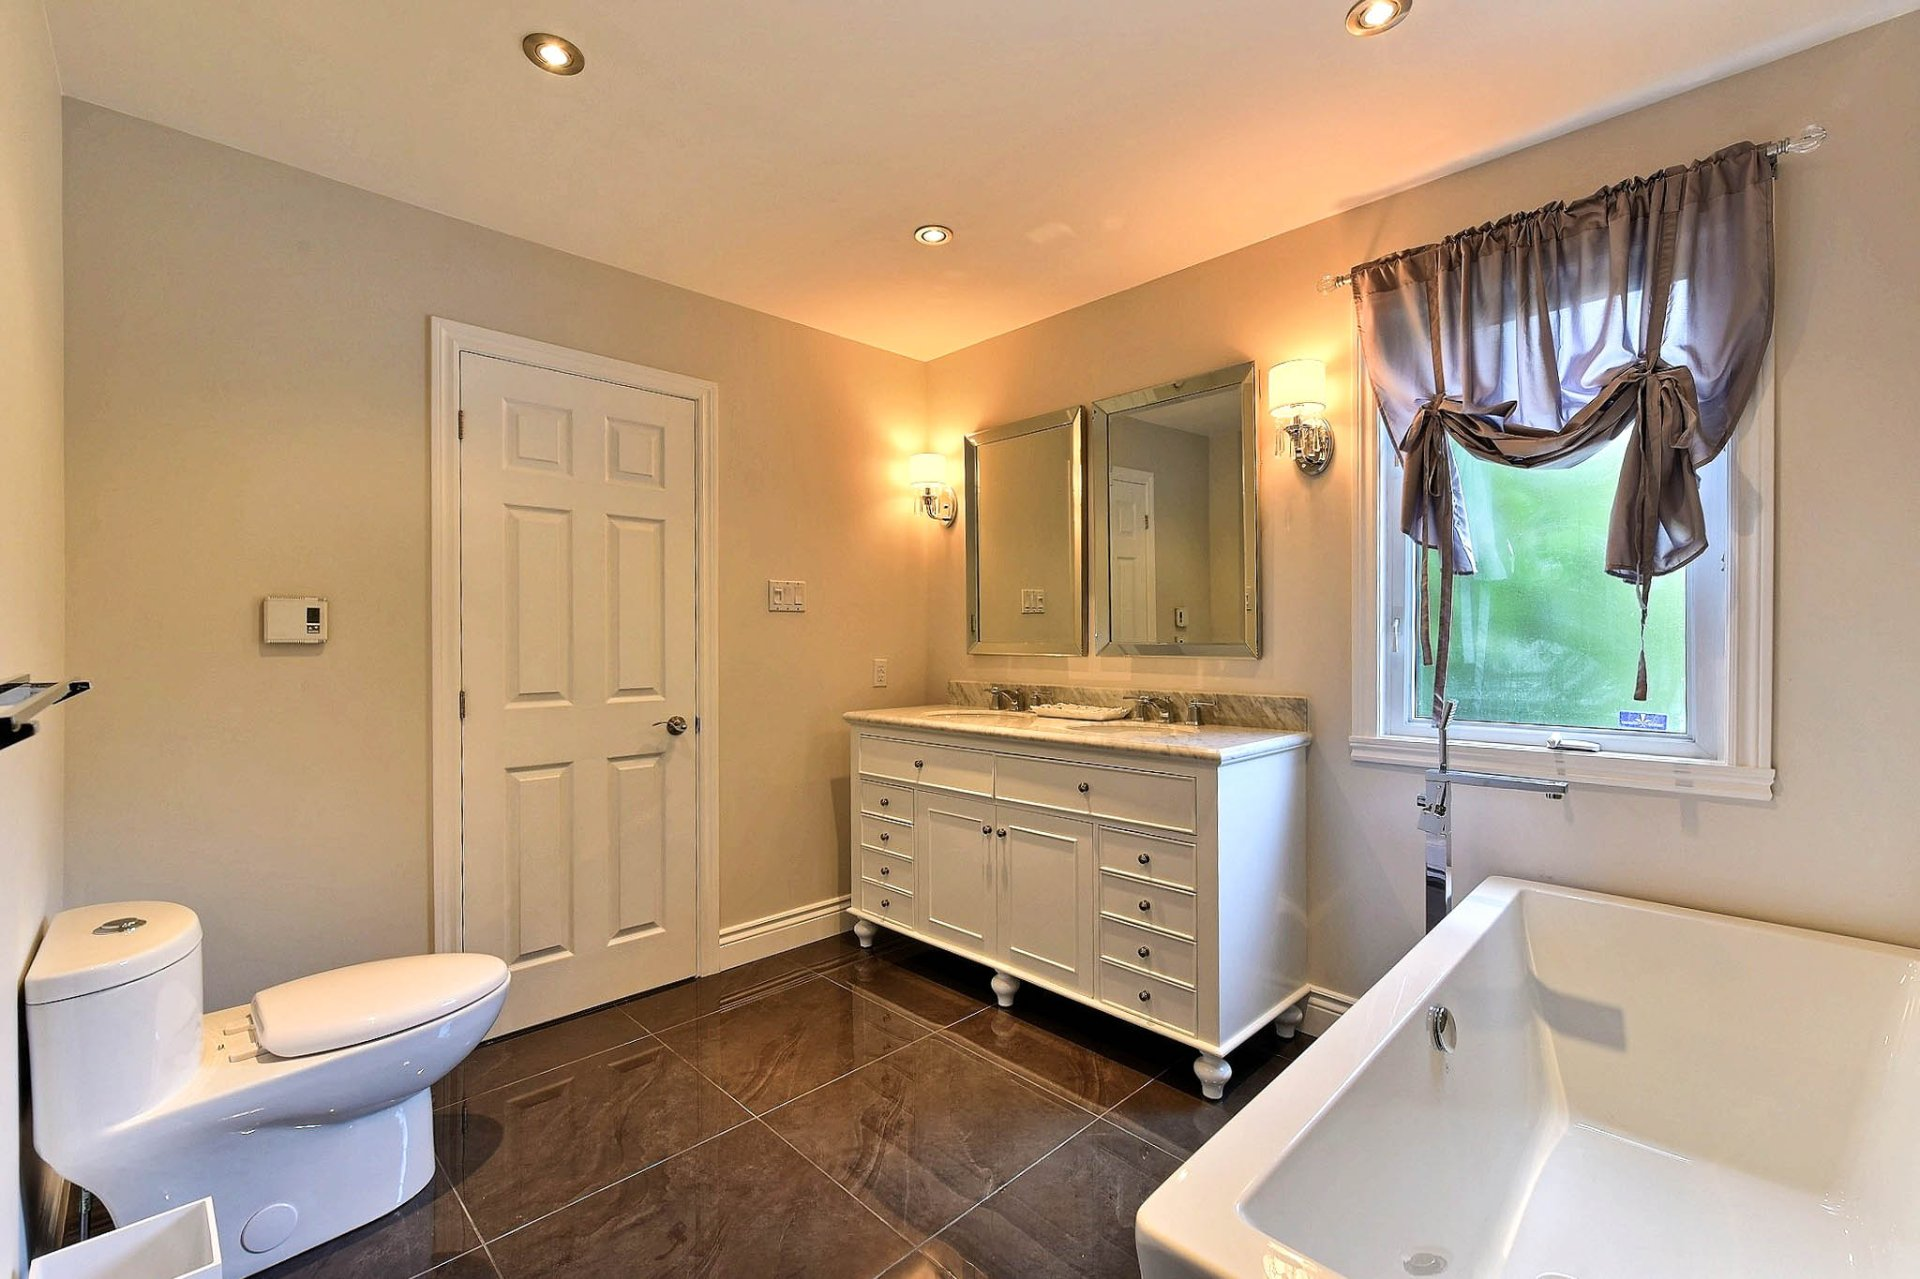 Salle De Bain Ove Laval ~ two or more storey for sale chomedey laval buy two or more storey